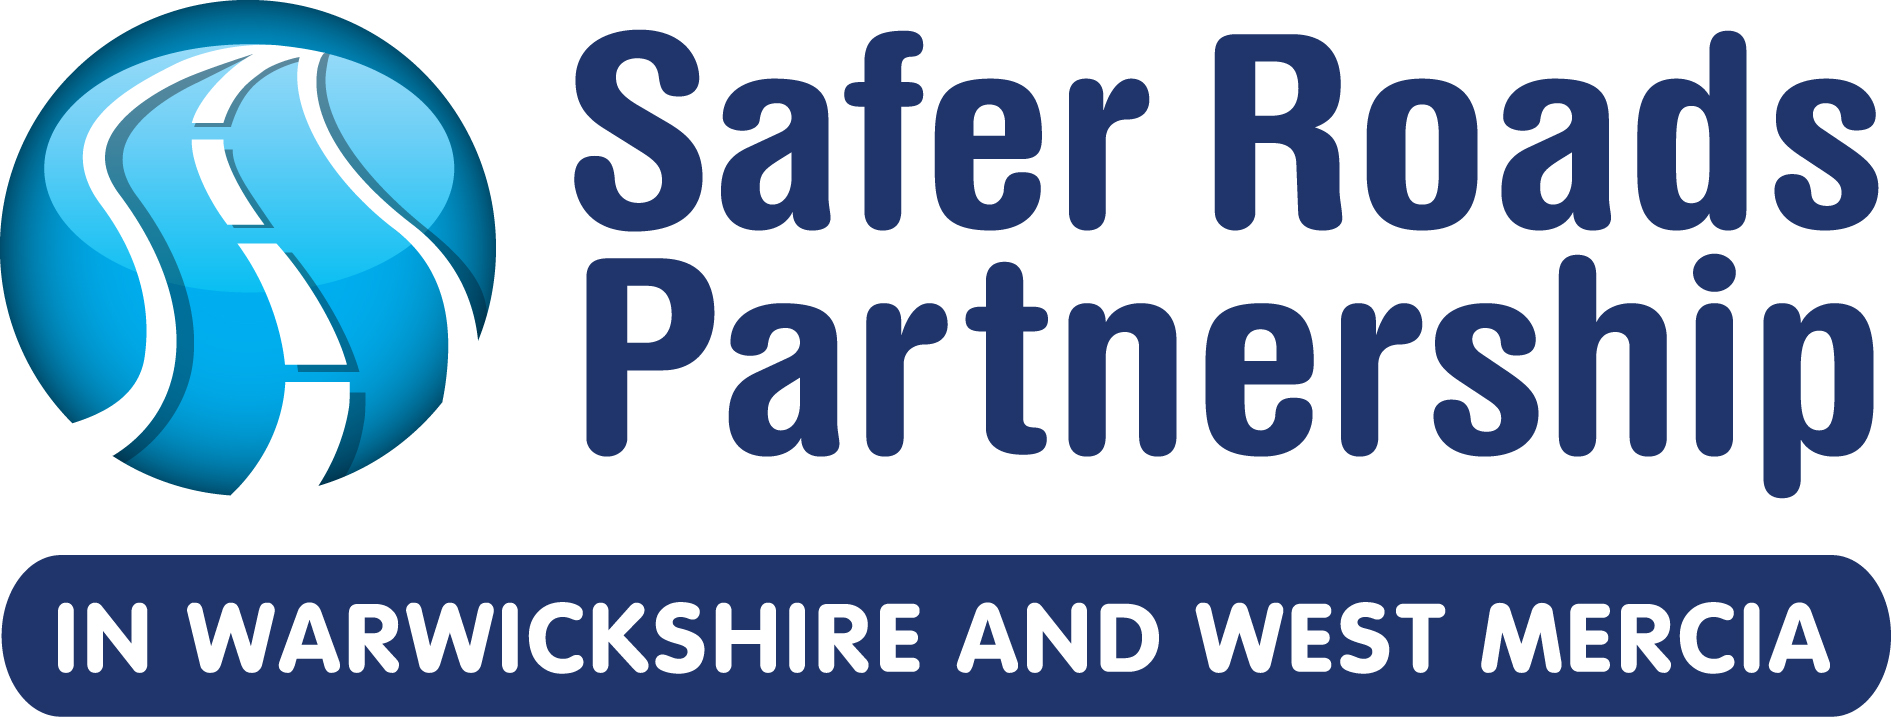 Safer road partnership